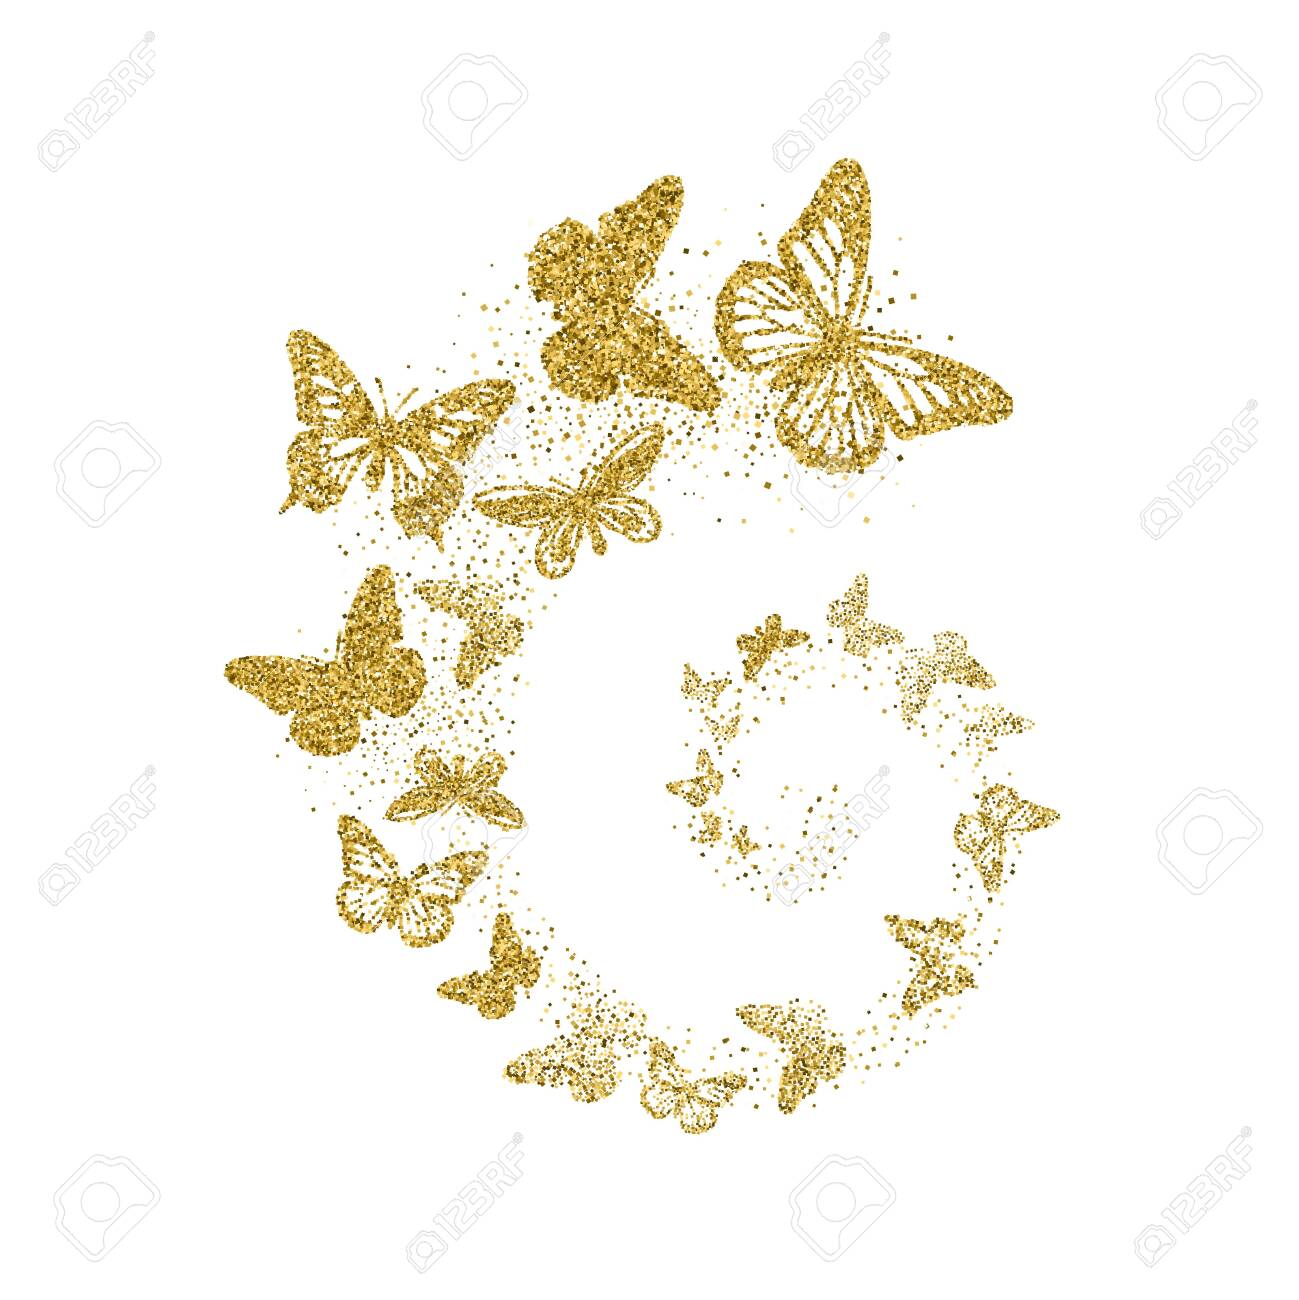 Golden glitter butterflies fly in spiral on white background. Beautiful gold silhouettes with different shapes wings. For invitation, fashion, decorative abstract design elements. Vector illustration. - 124521020